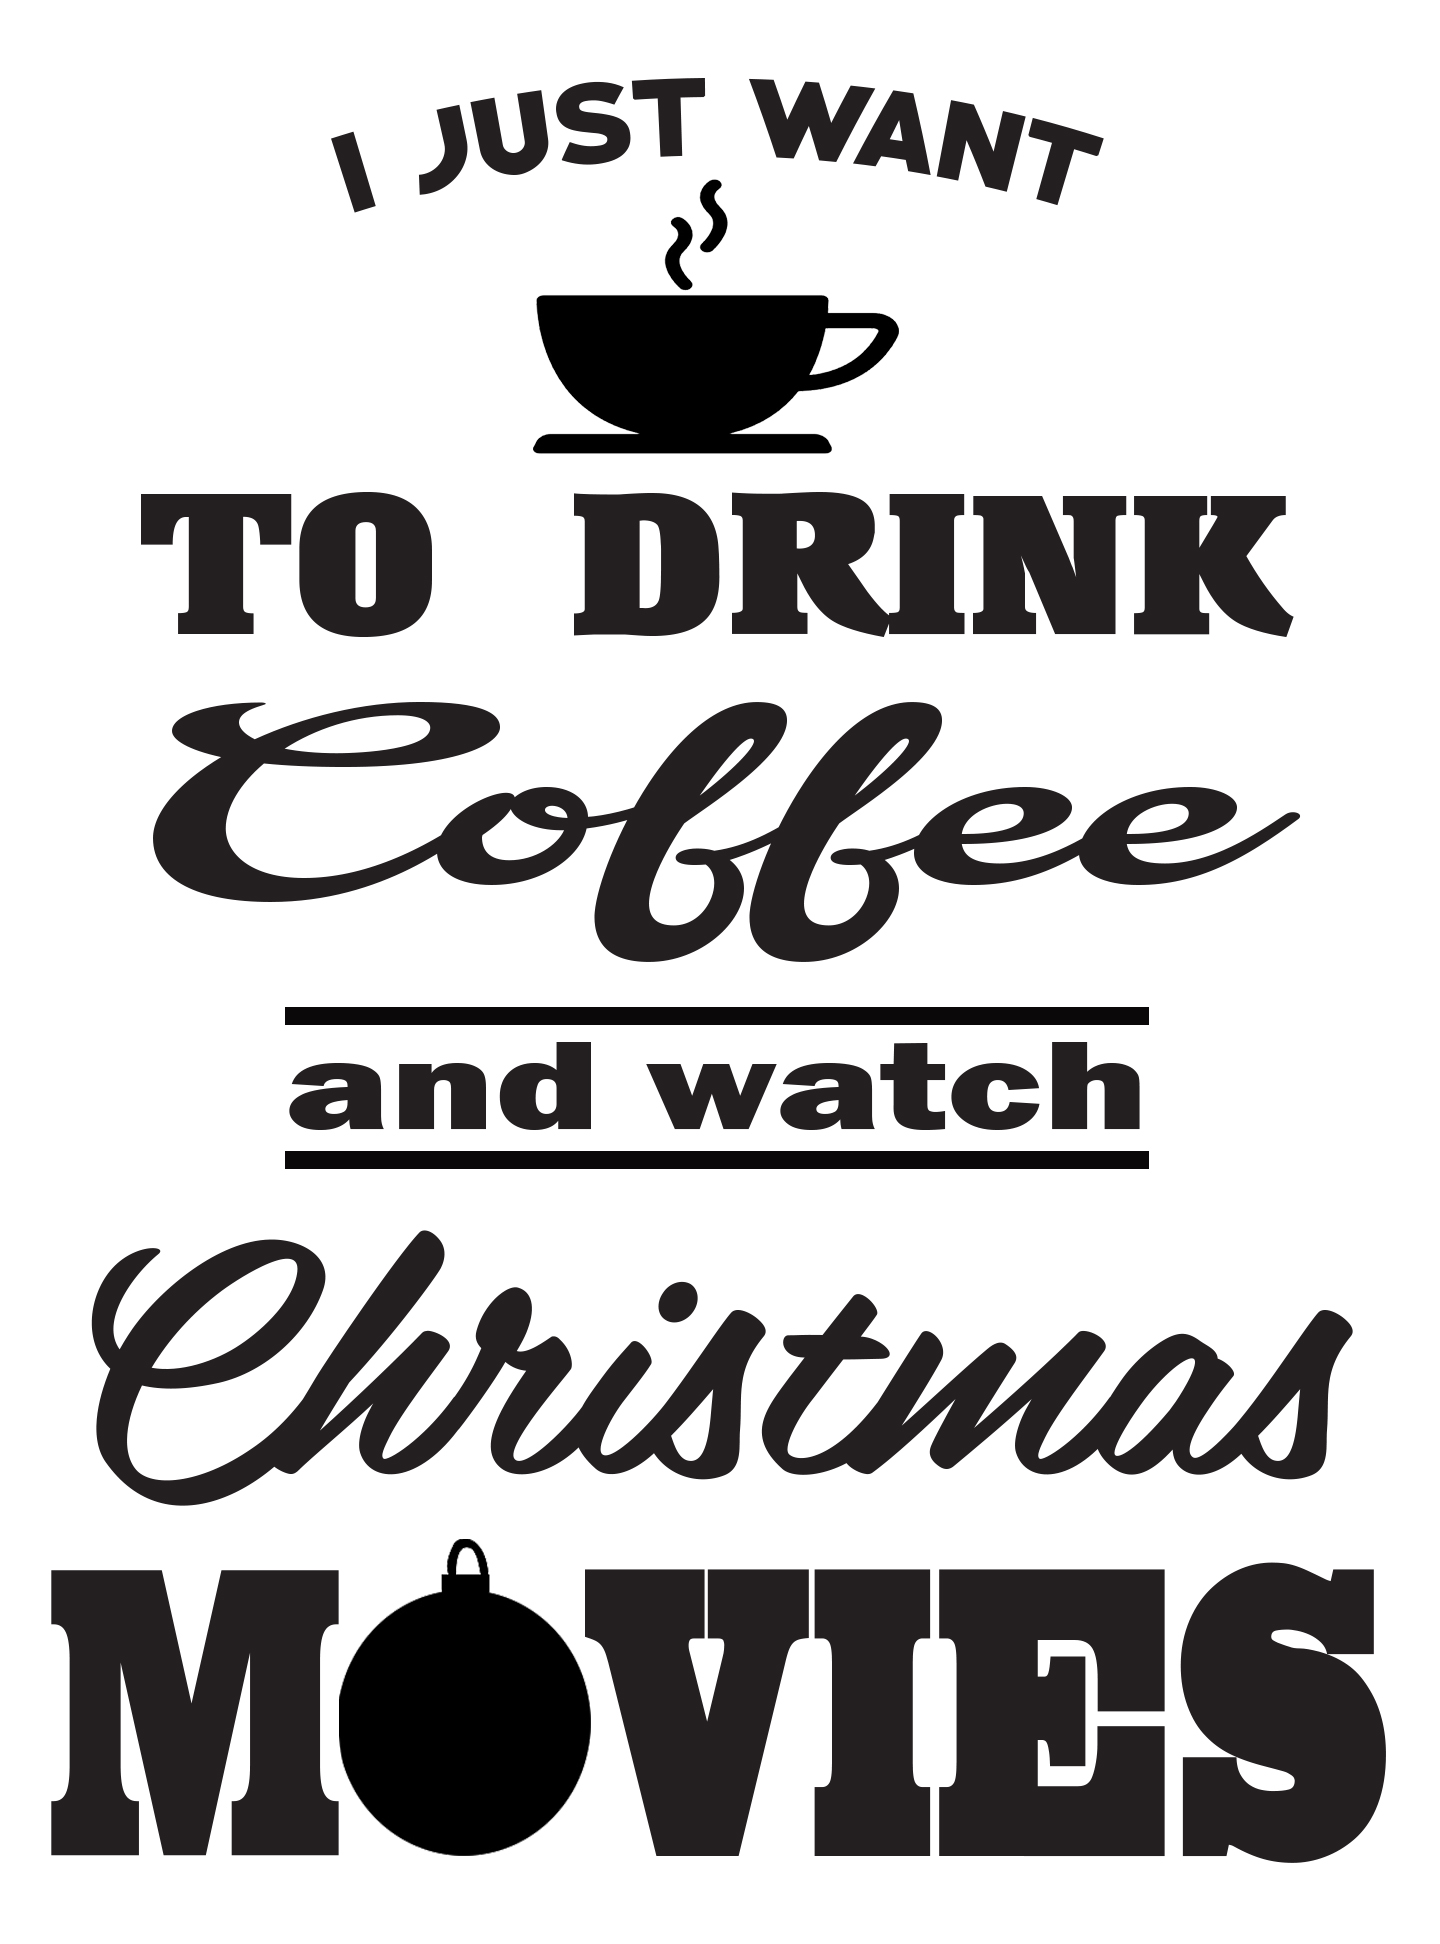 Download FREE Watch Christmas Movies SVG File - Free SVG Files